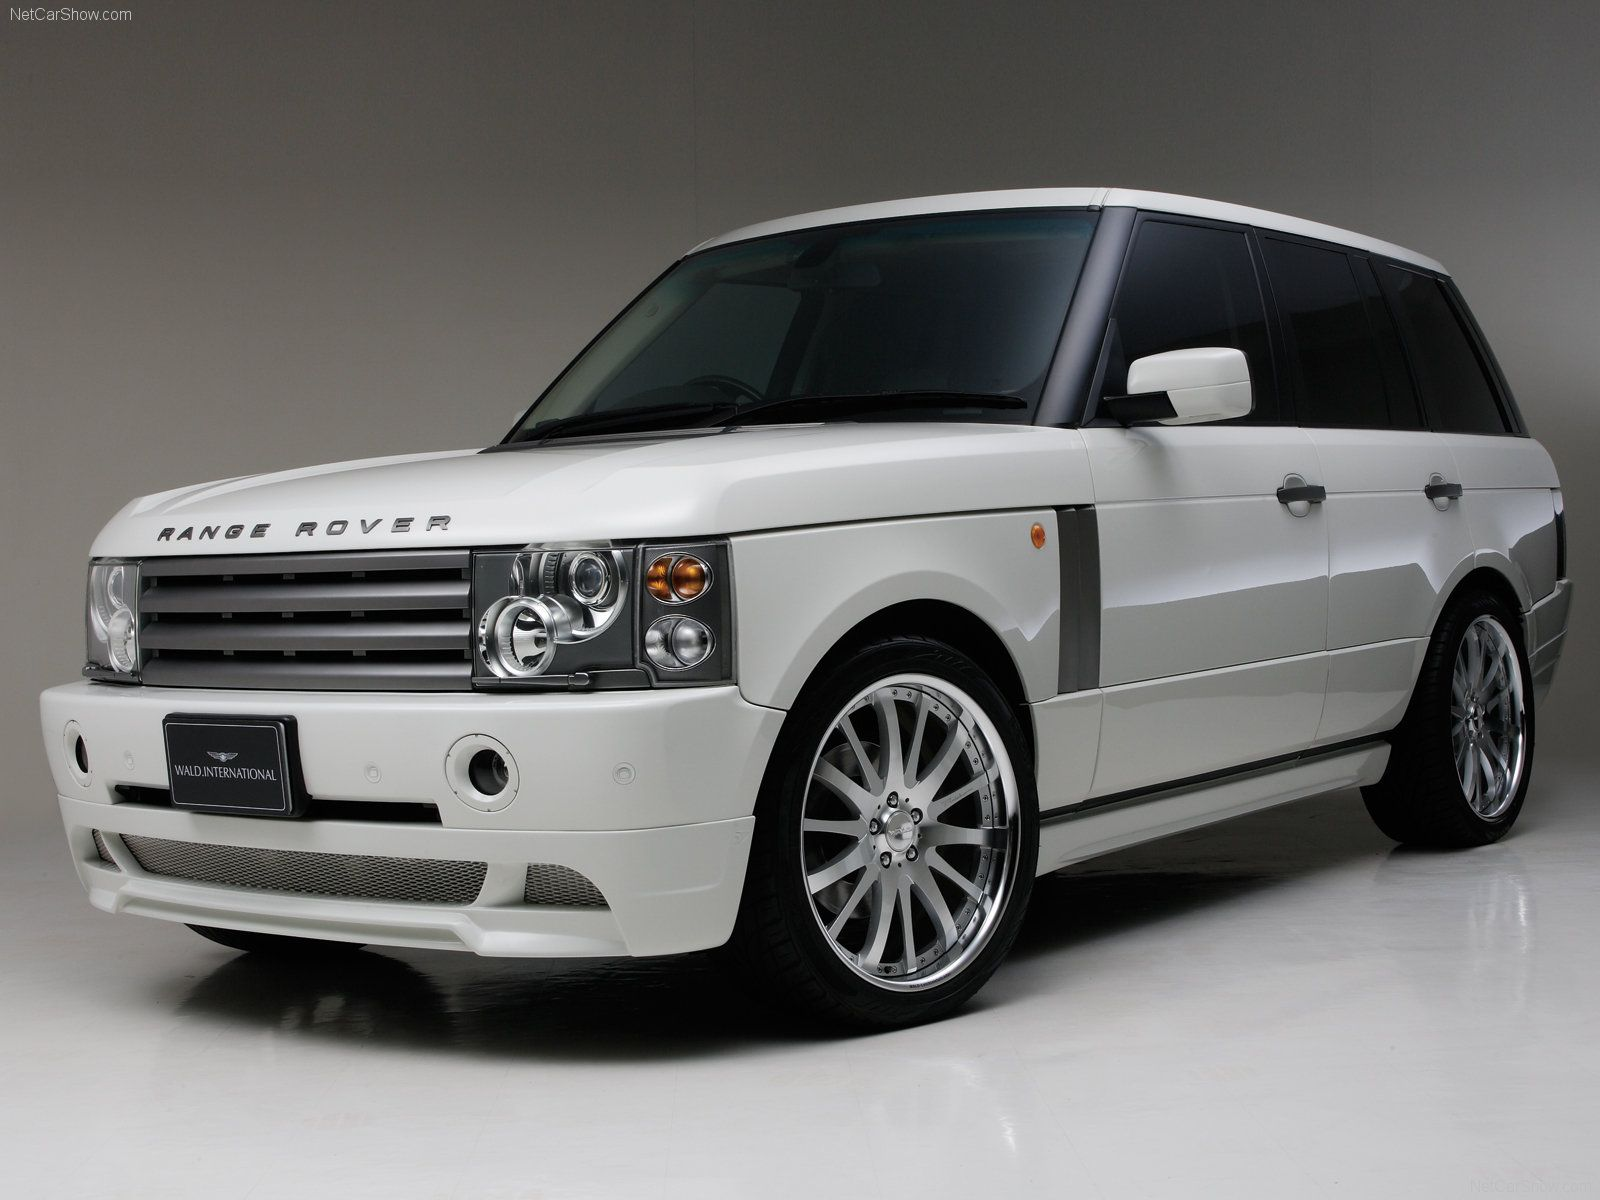 Pin By Mario Miotti On Whips Range Rover Supercharged Range Rover Range Rover White